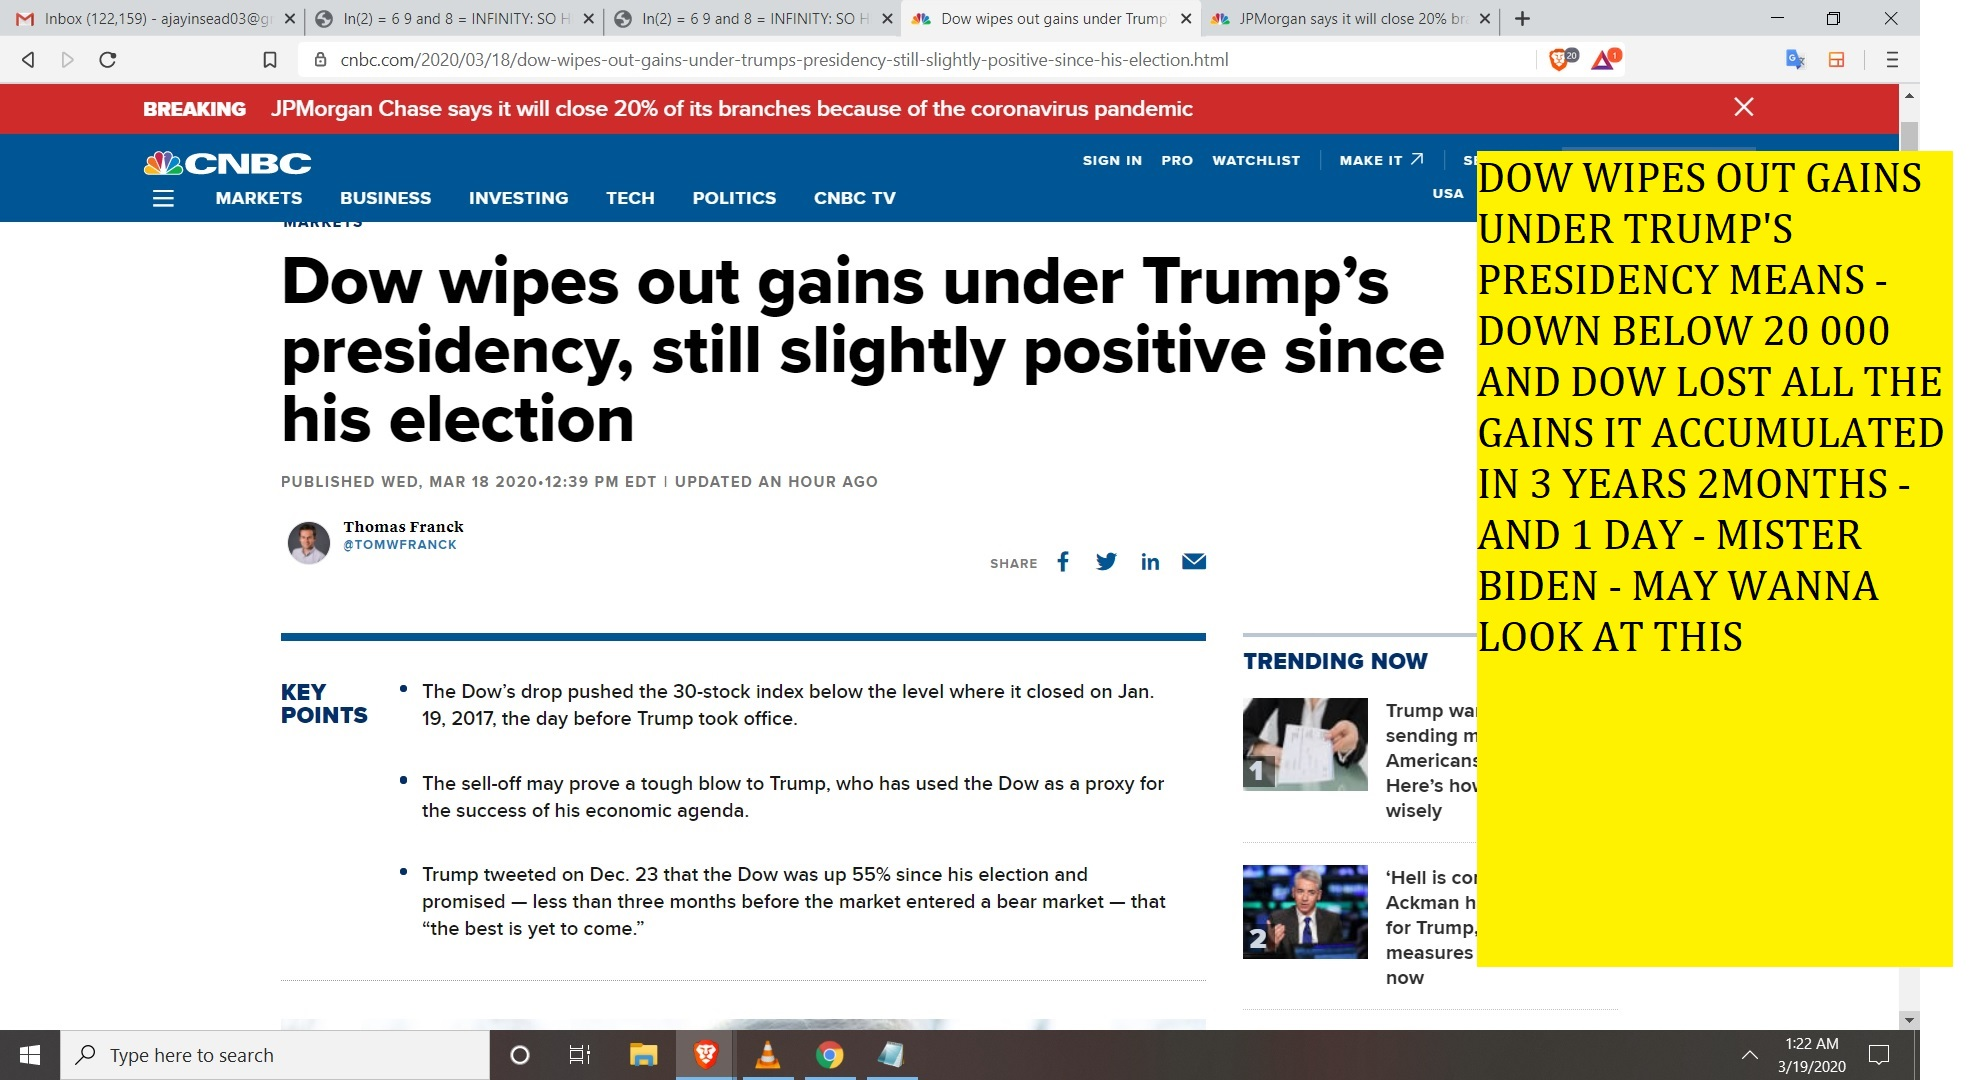 DOW WIPES OUT GAINS UNDER TRUMP'S PRESIDENCY MEANS - DOWN BELOW 20 000 AND DOW LOST ALL THE GAINS IT ACCUMULATED IN 3 YEARS 2MONTHS - AND 1 DAY - MISTER BIDEN - MAY WANNA LOOK AT THIS